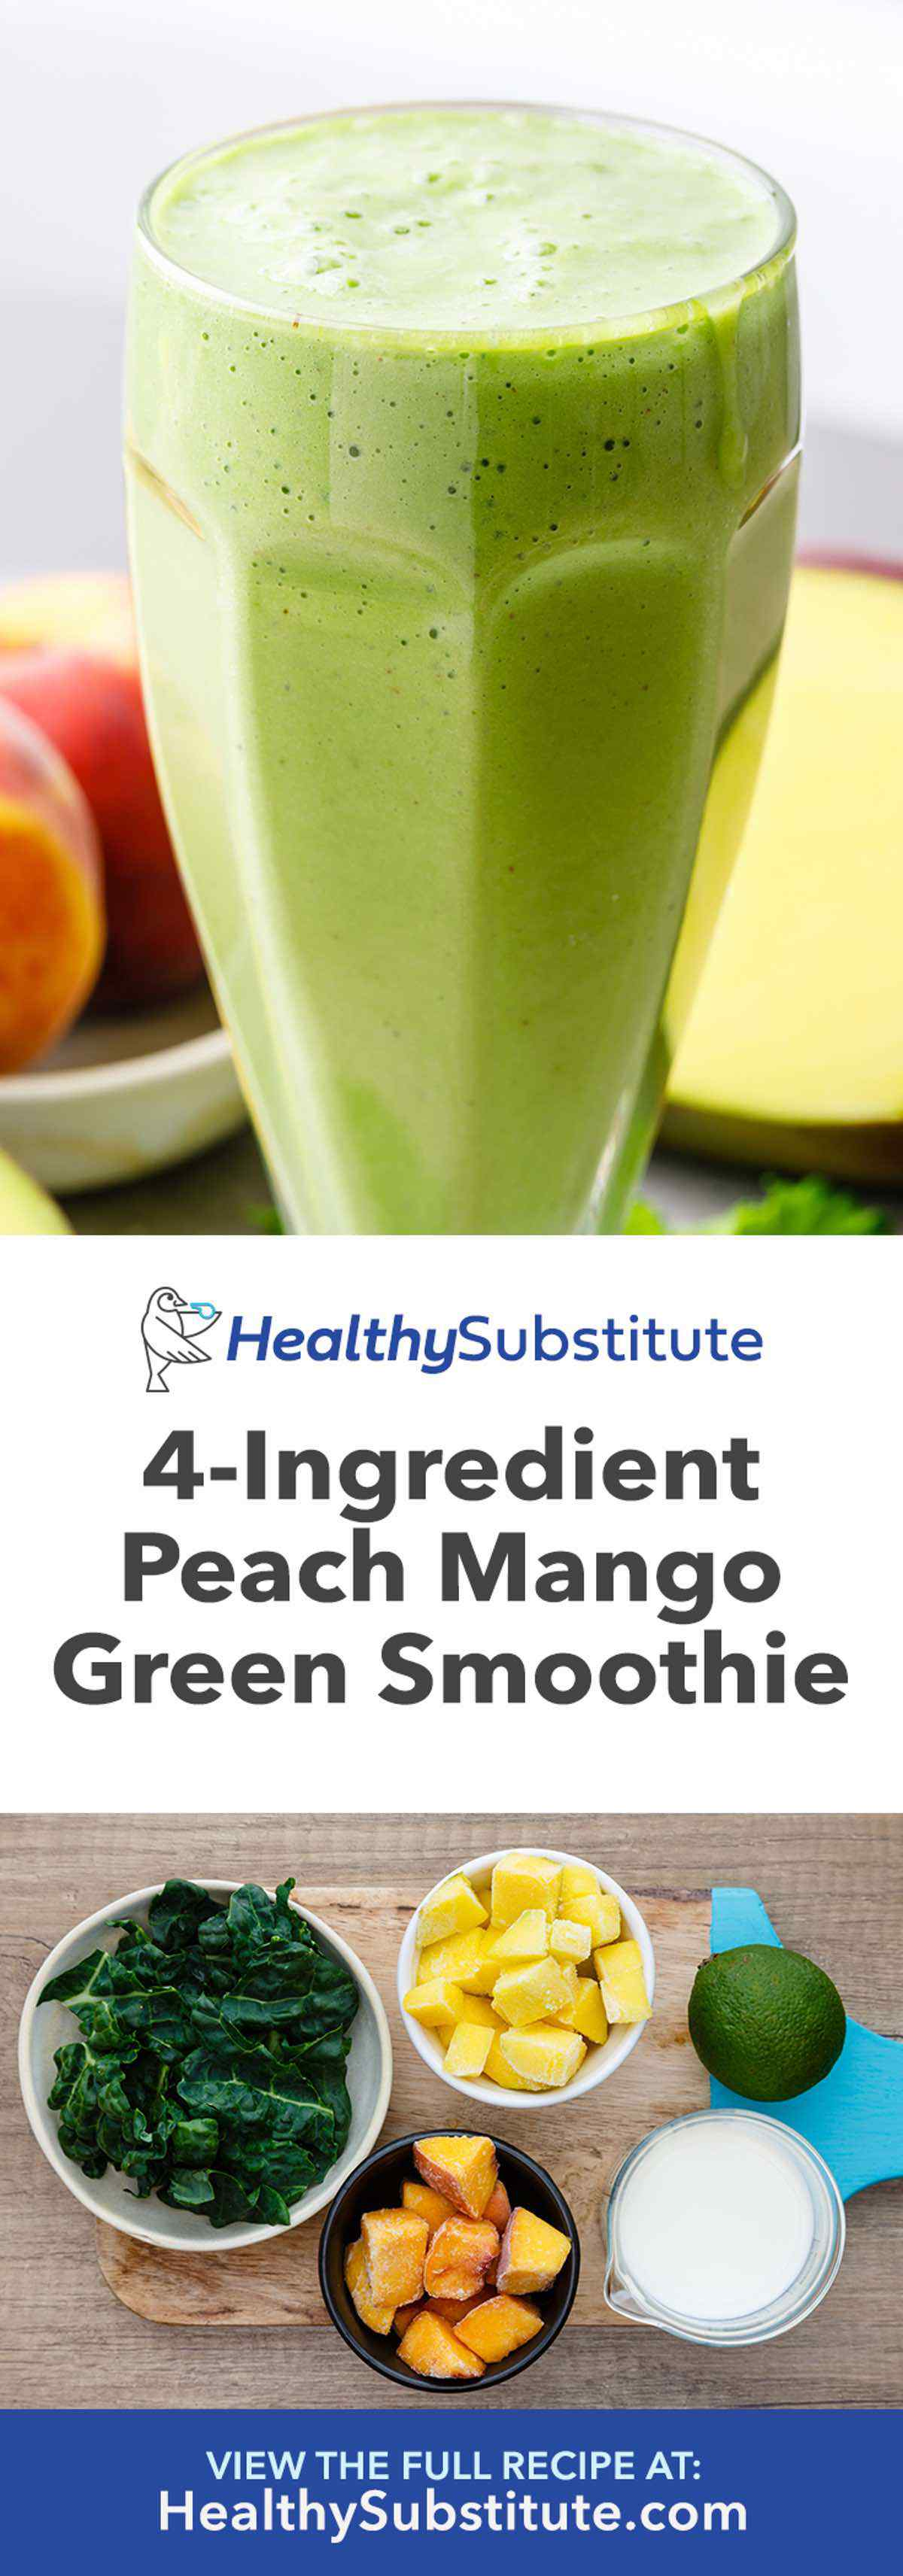 Peach Mango Kale Green Smoothie